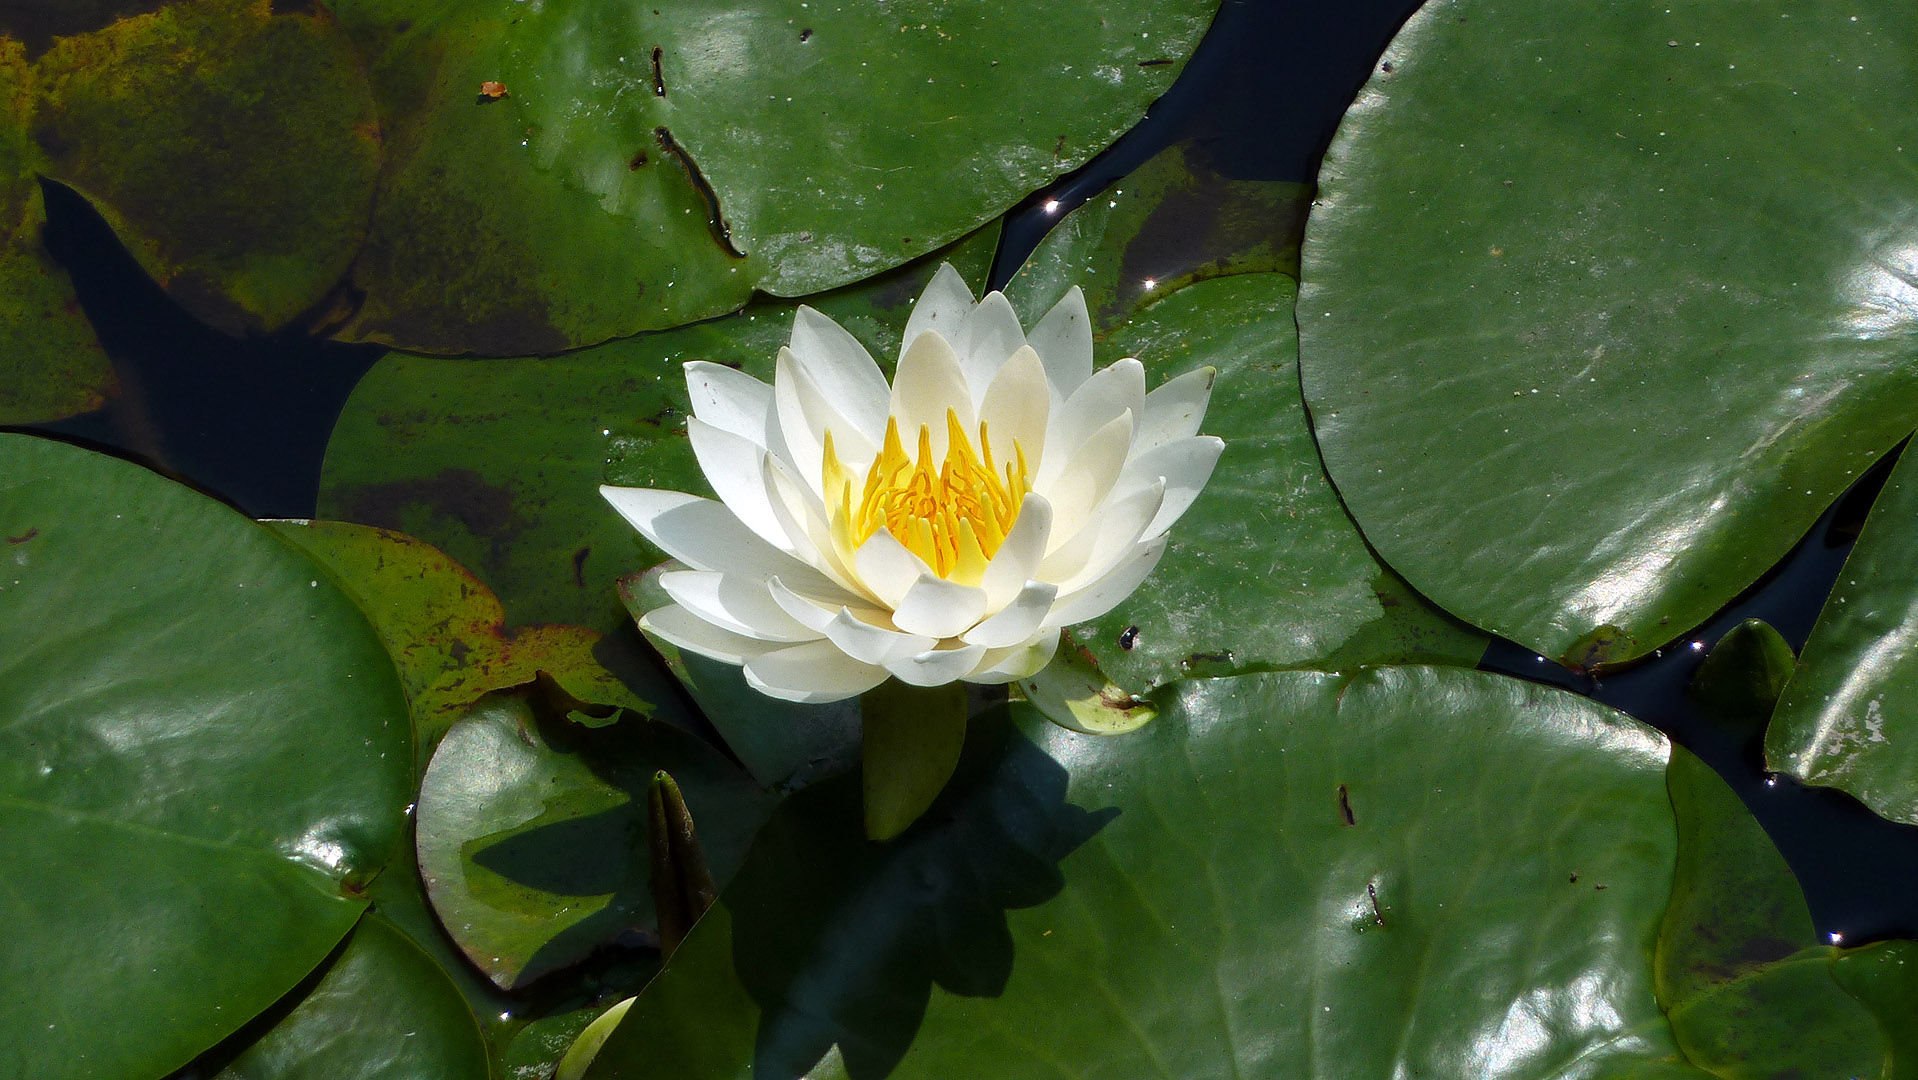 The lotus and the lily pads traveljapanblog the lotus and the lily pads izmirmasajfo